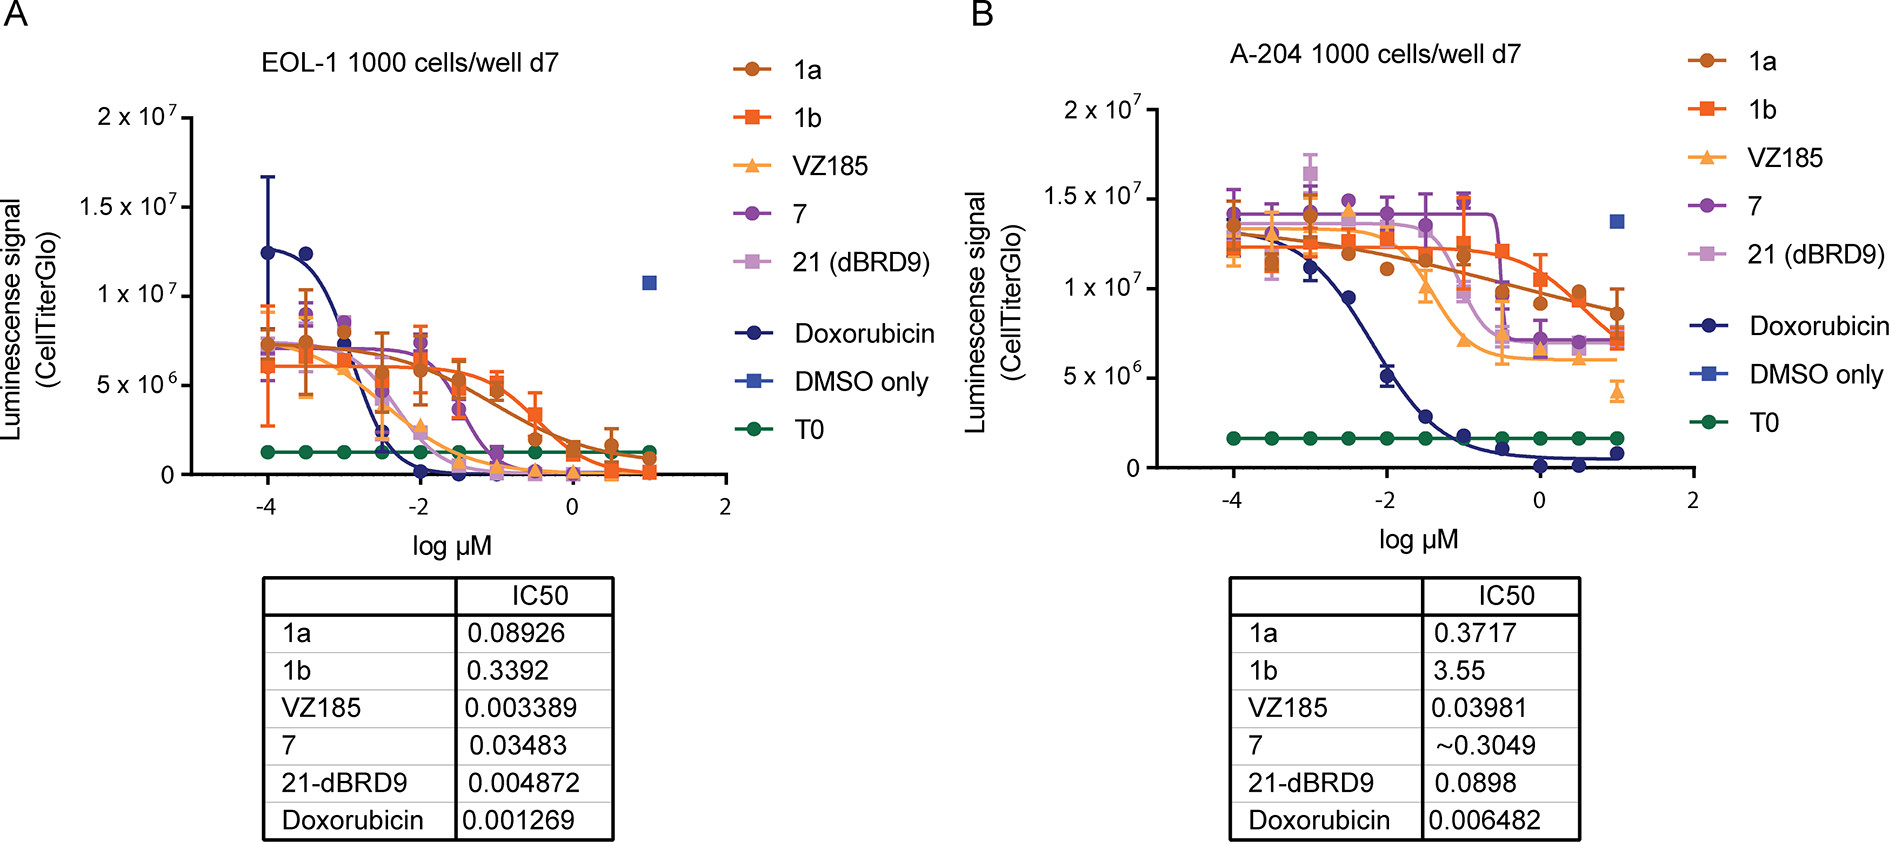 Figure 11. Effect of BRD7/9 degradation on viability of BRD9-sensitive cancer cell lines.